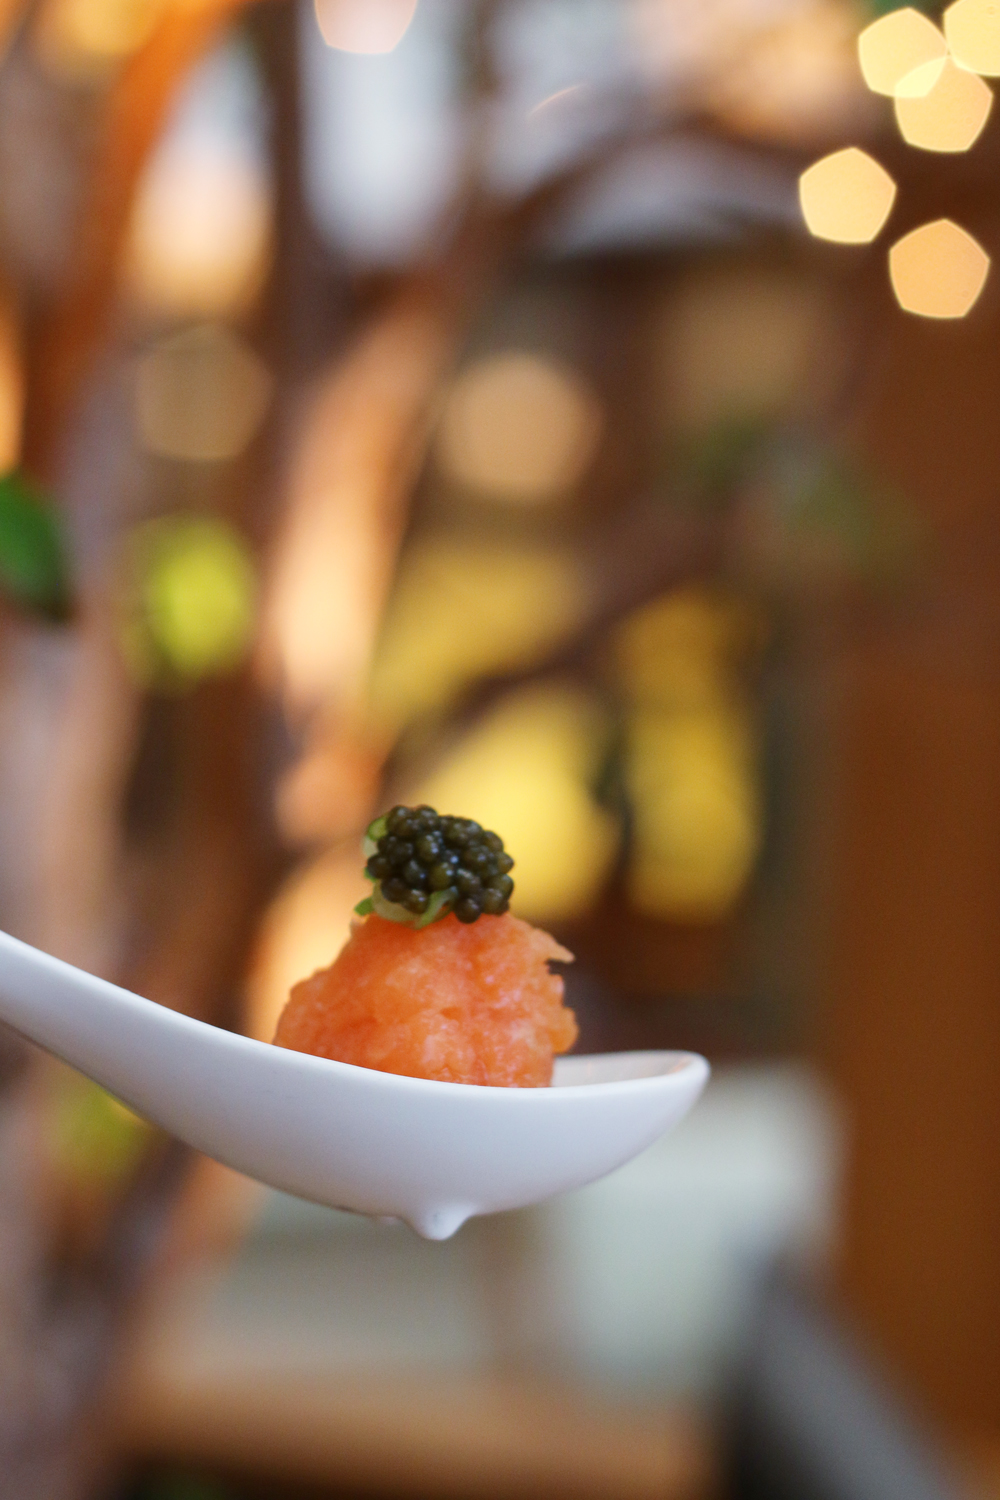 Nobu Miami at Eden Roc Hotel prix-fixe menu Salmon Tartare with Caviar